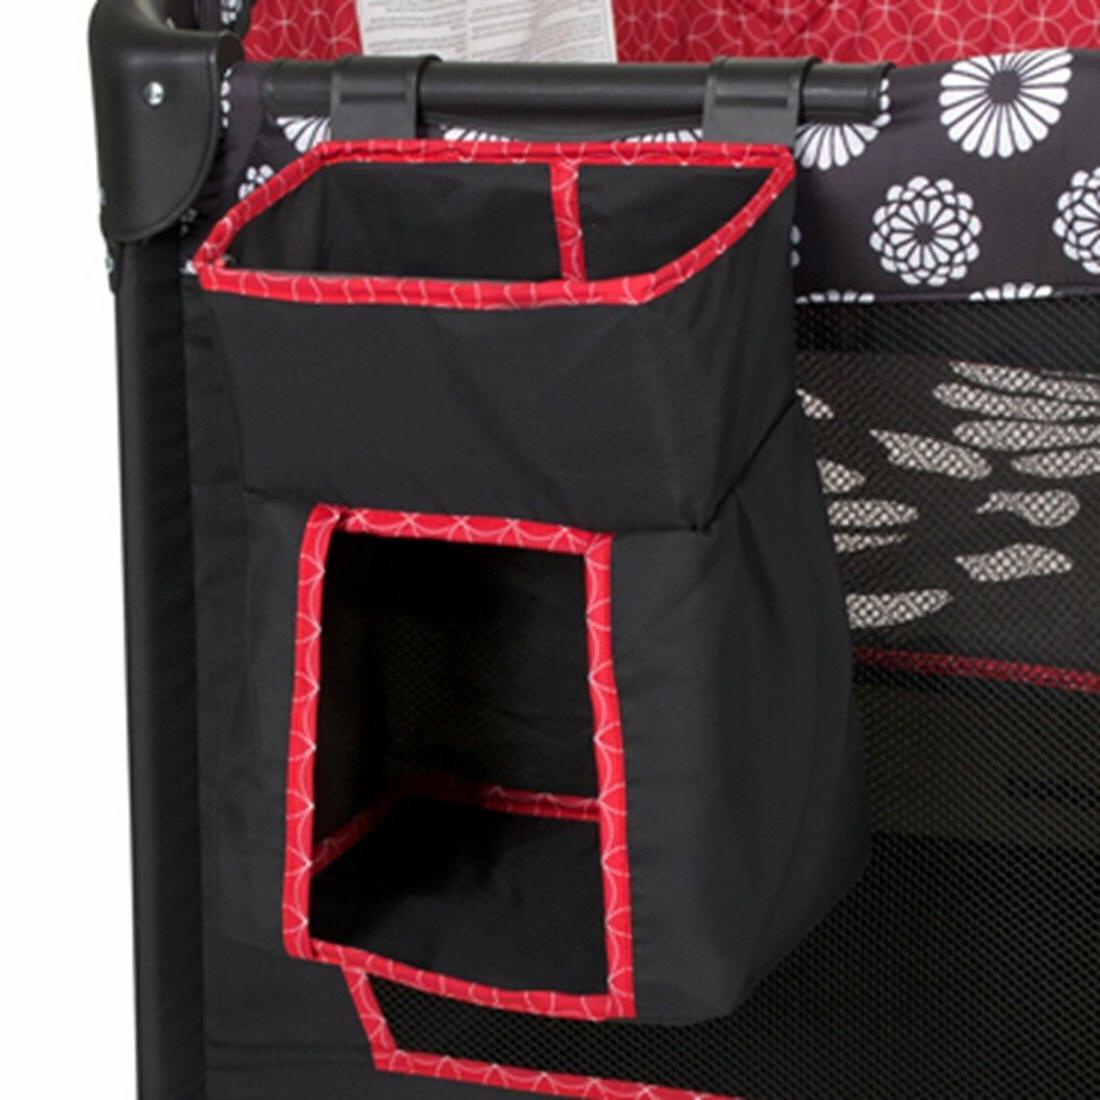 Baby Trend Car Seat Travel System Playard Combo Floral New Boxed